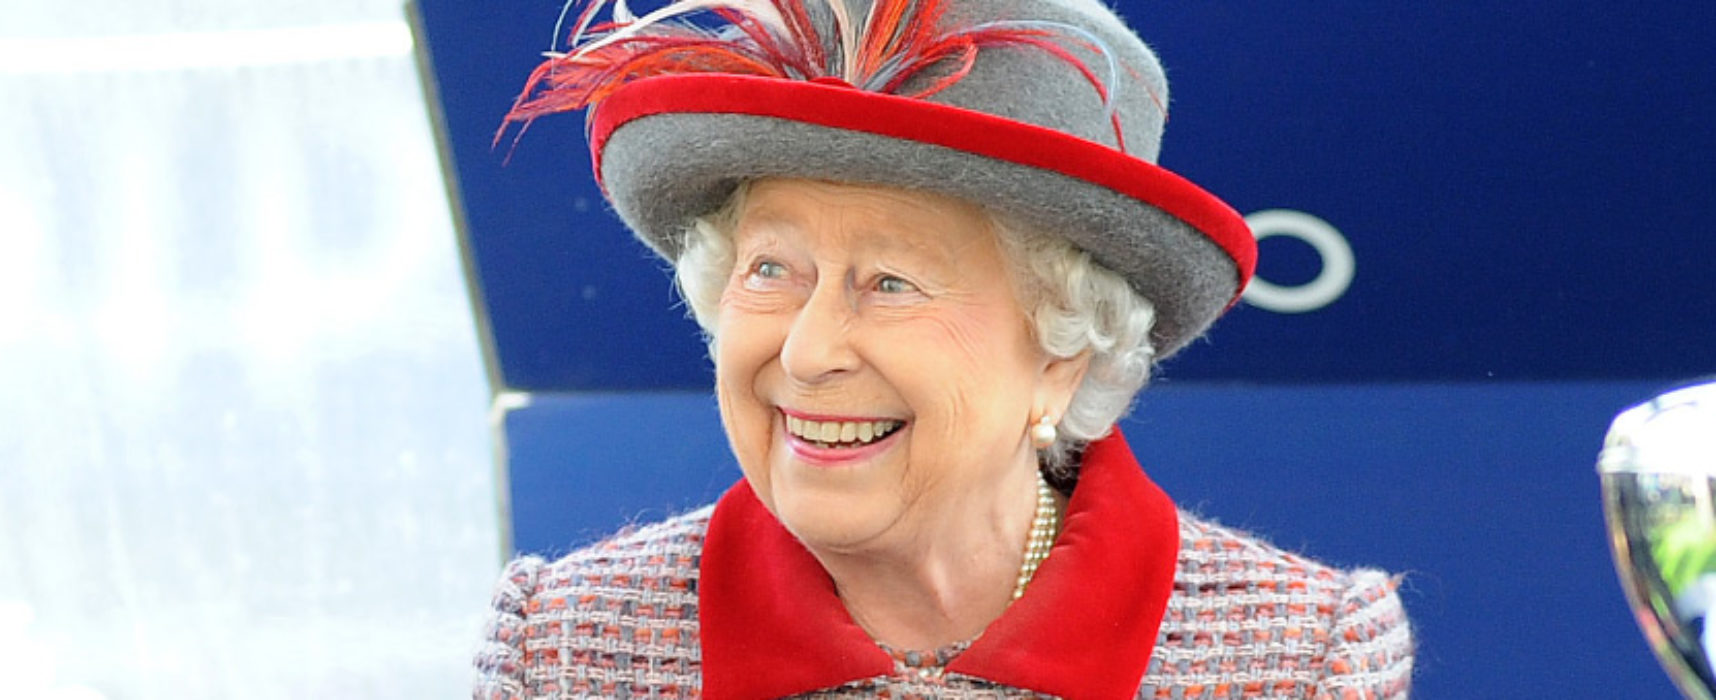 The Queen at Christmas becoming a 'family turn-off'